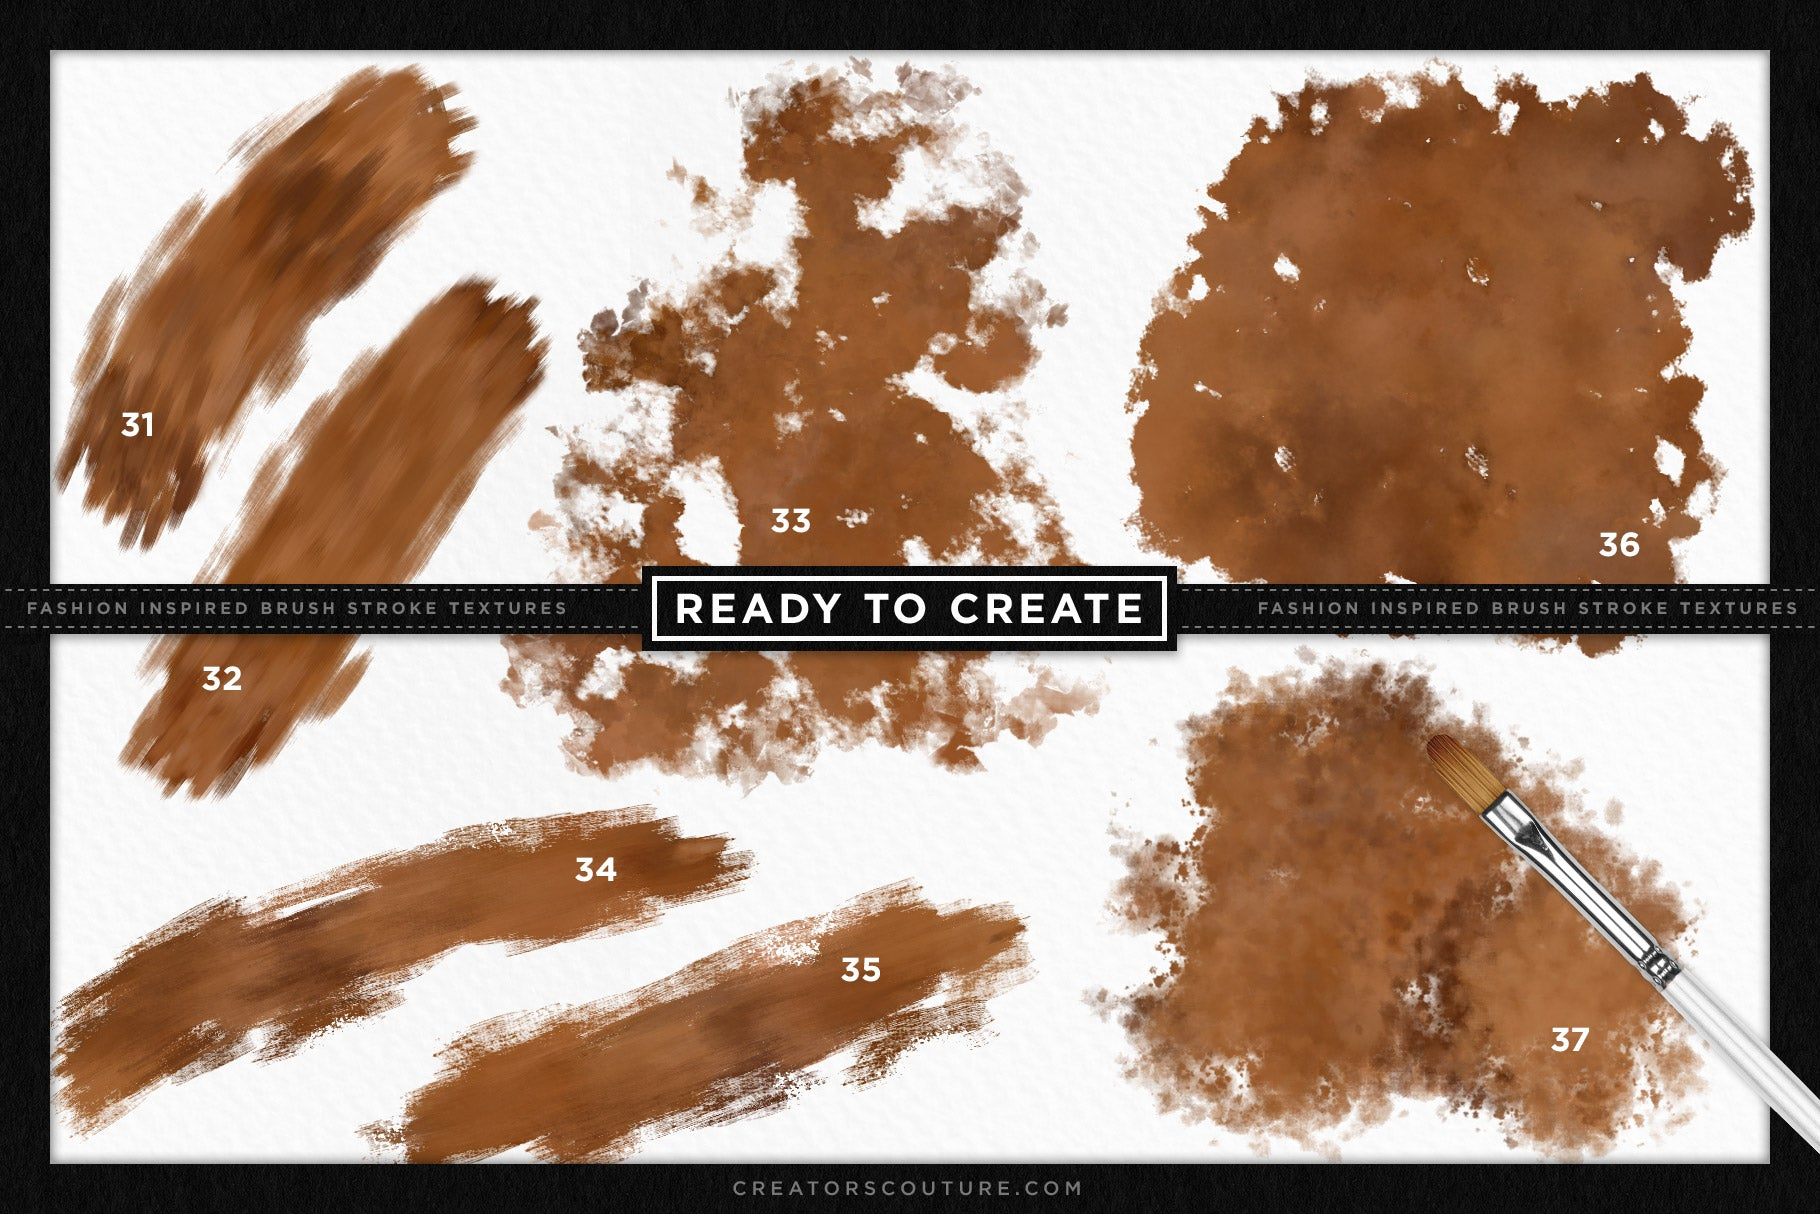 "Painted Perfection ""Earthy & Fantastical"" 